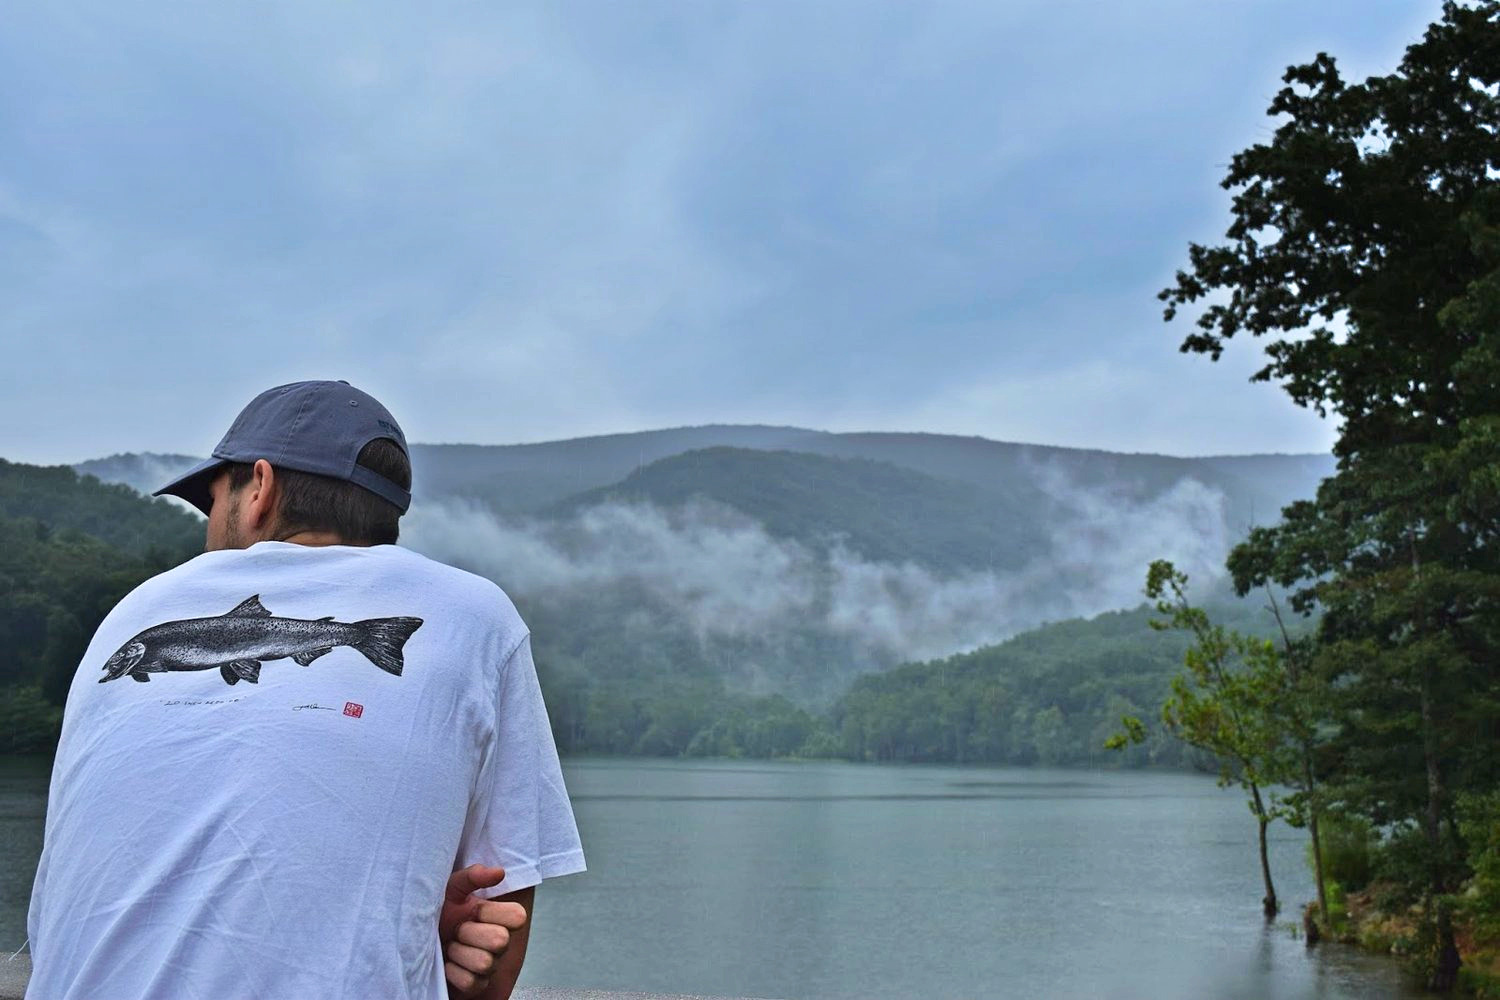 Is cotton a good choice for hiking?